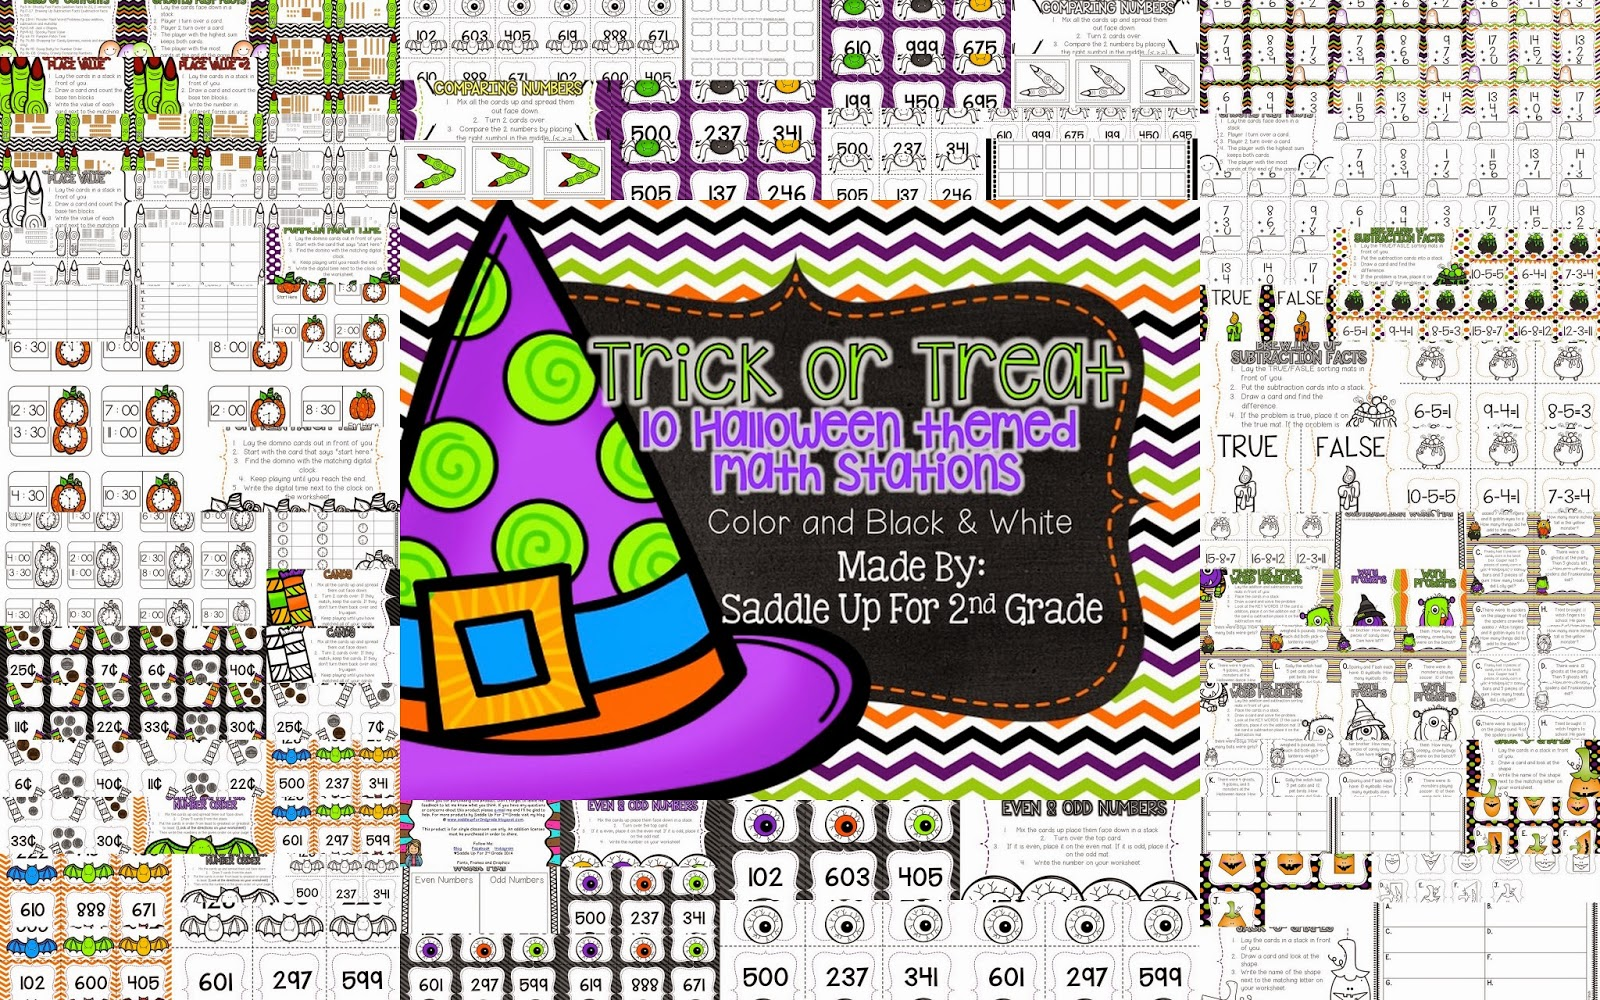 Trick or Treat Math Stations by Saddle Up For 2nd Grade